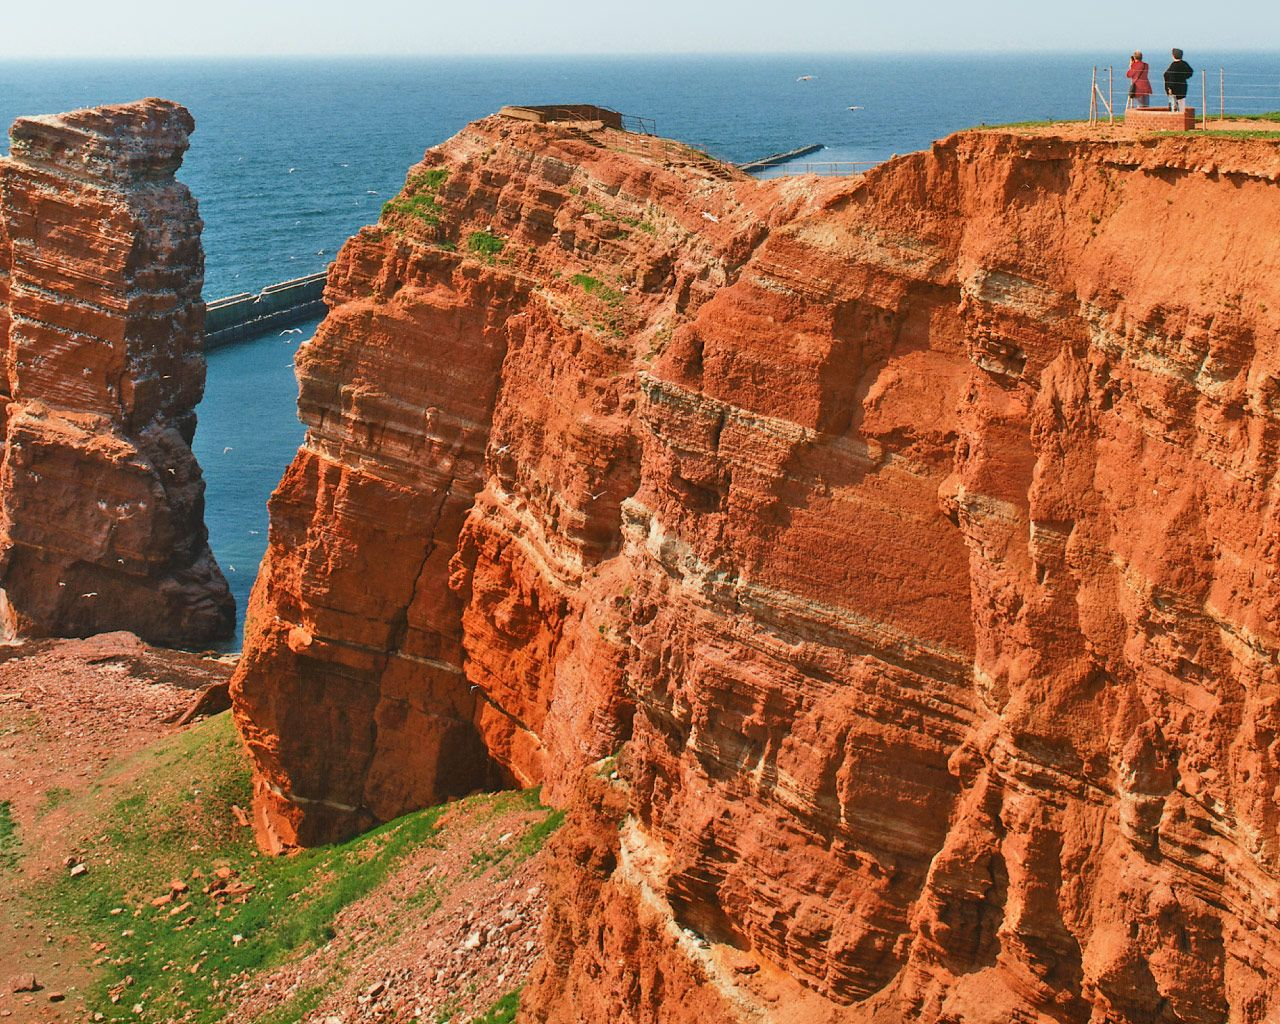 Hiking With A View In #Helgoland, Germany...via Nicole